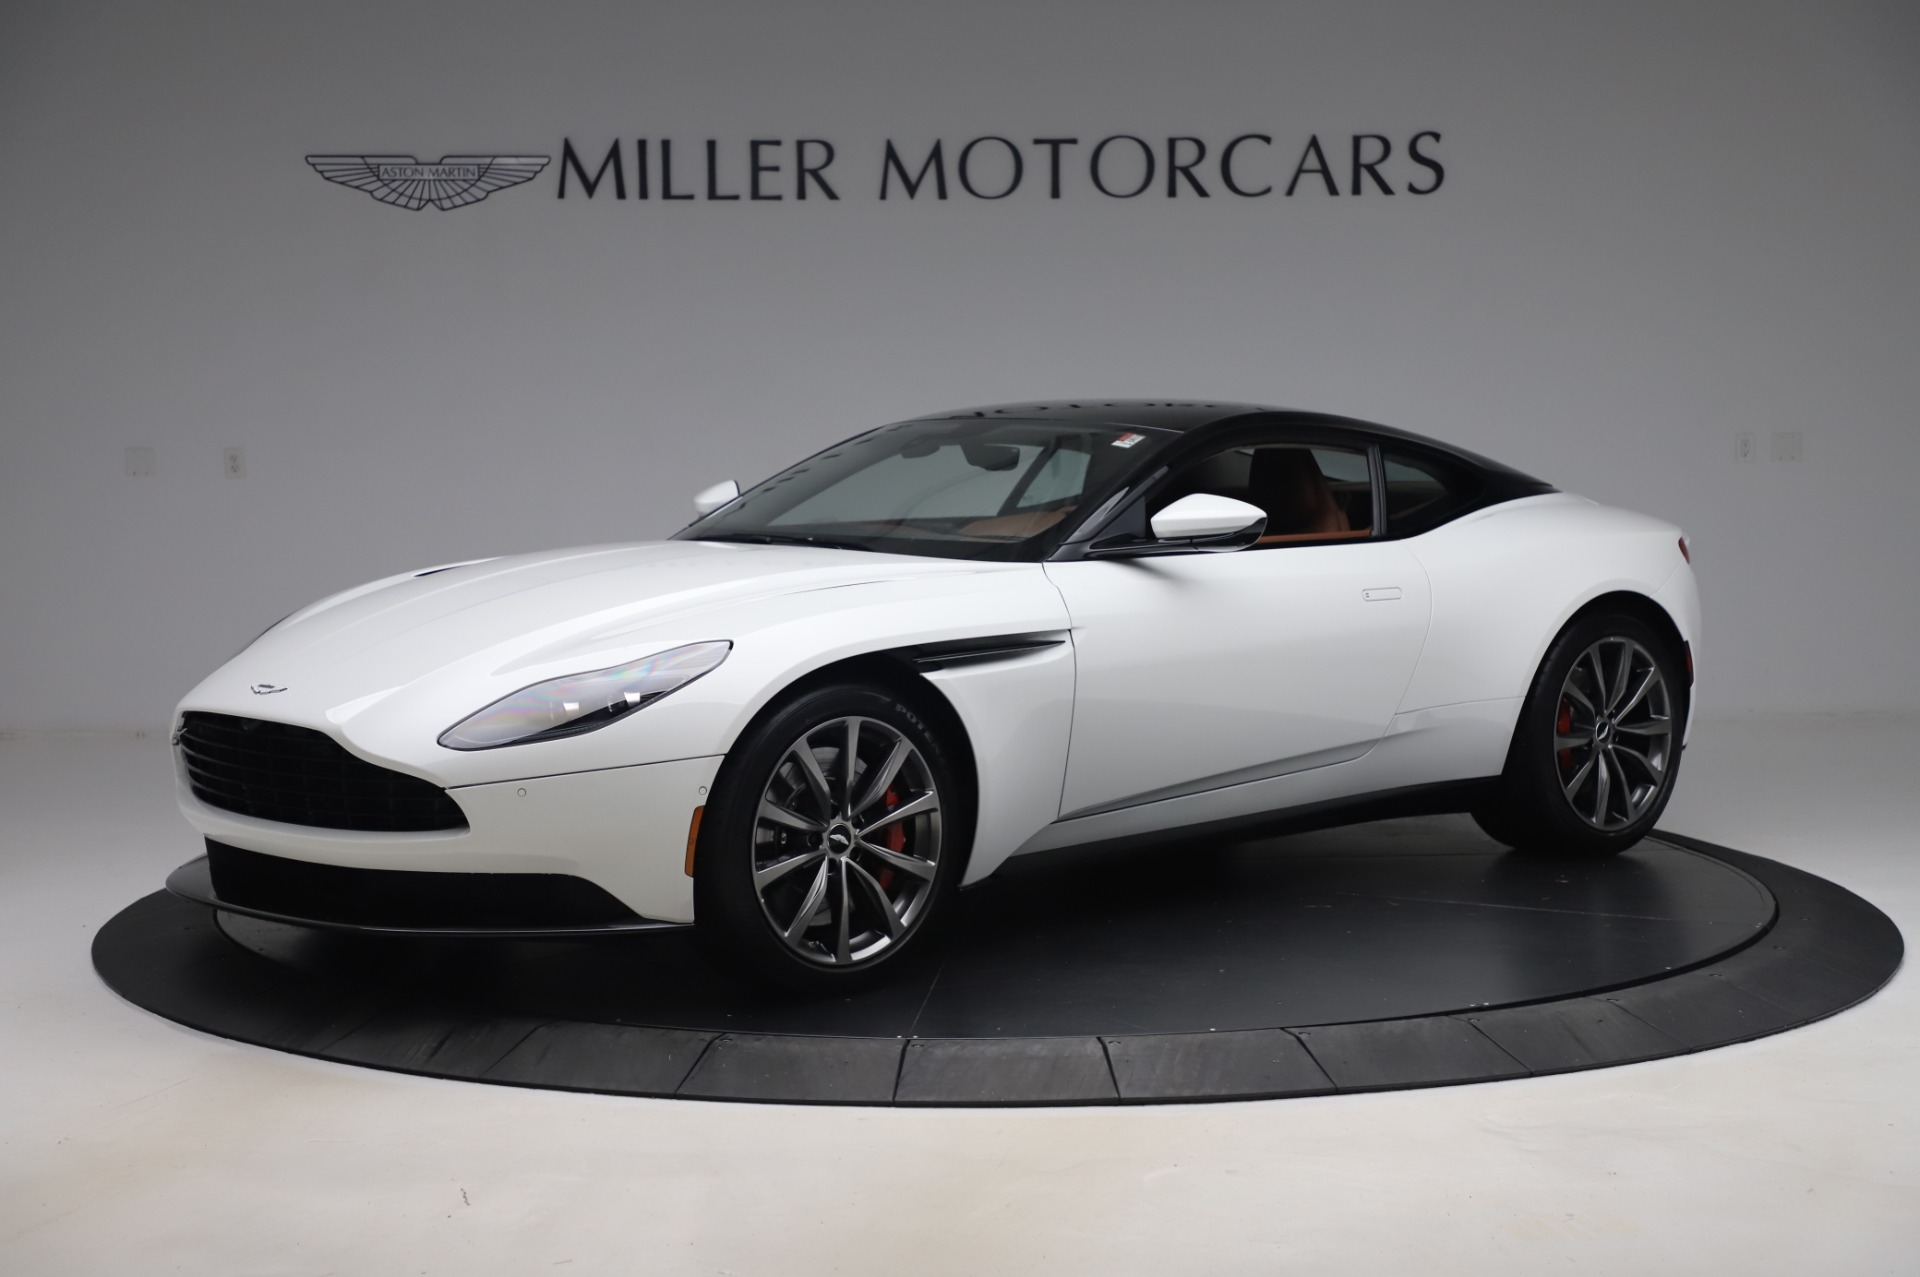 New 2020 Aston Martin Db11 V8 Coupe For Sale 233 266 Miller Motorcars Stock A1488